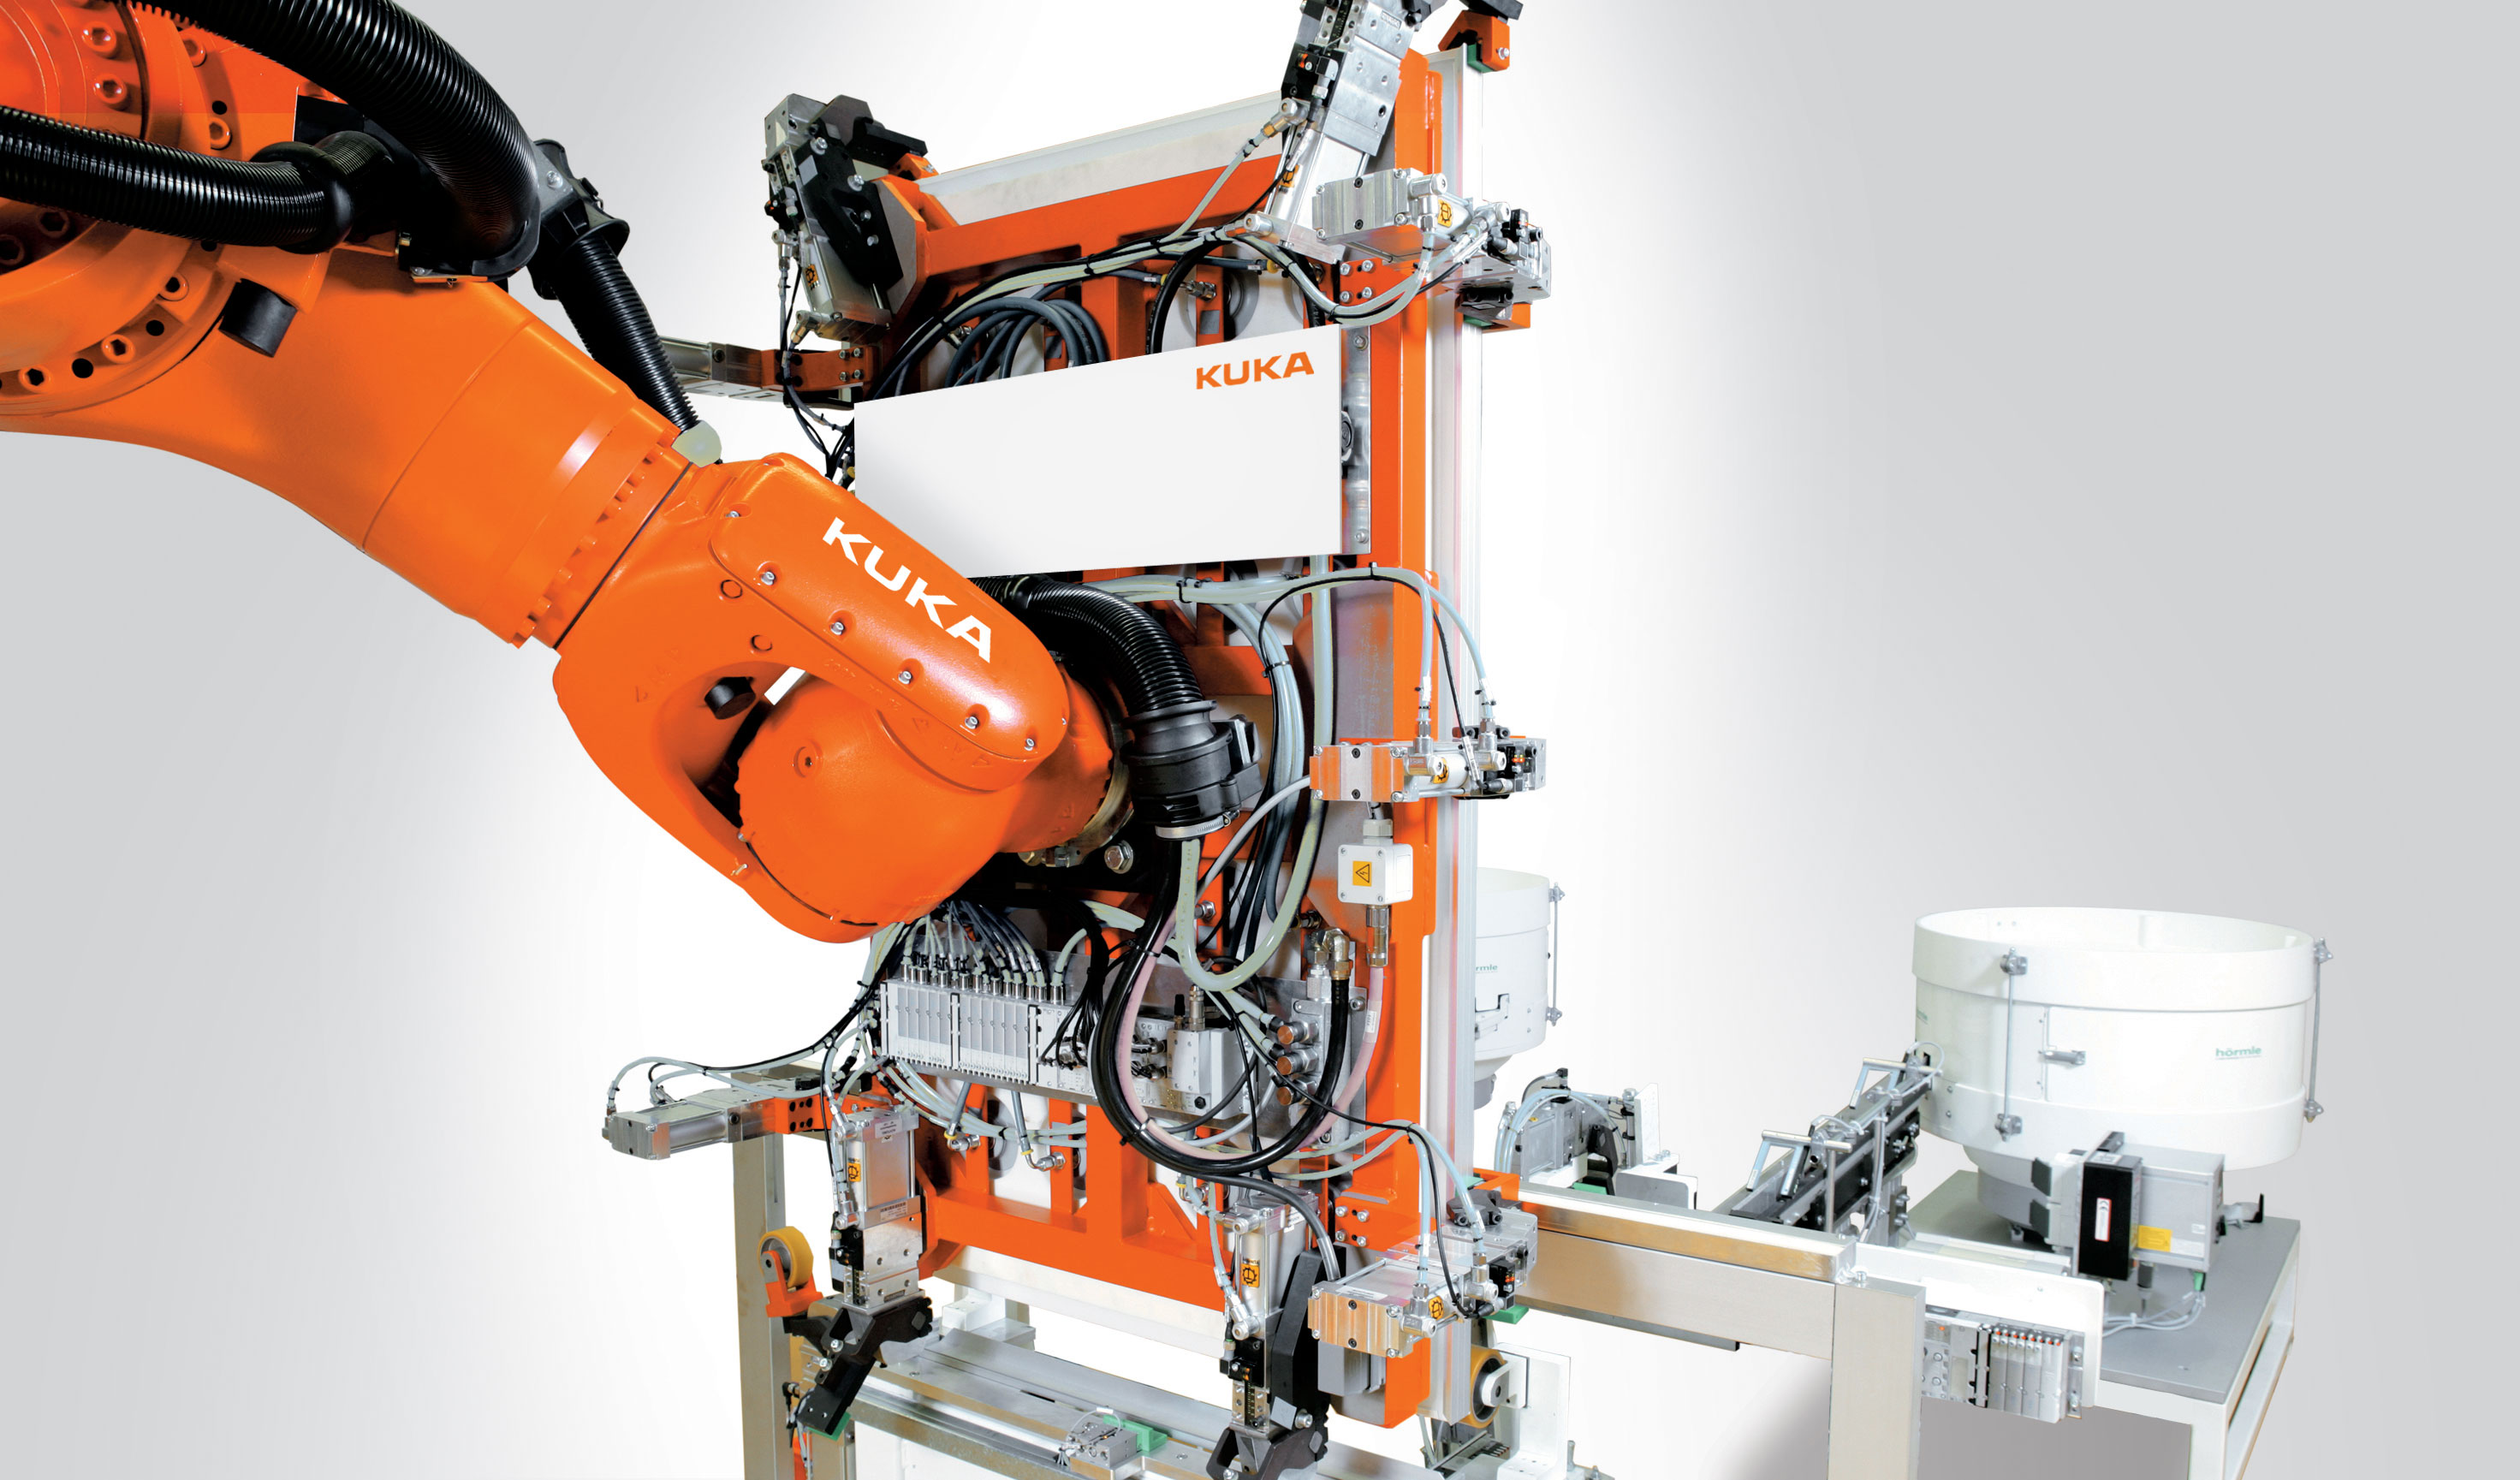 Kuka reports record orders